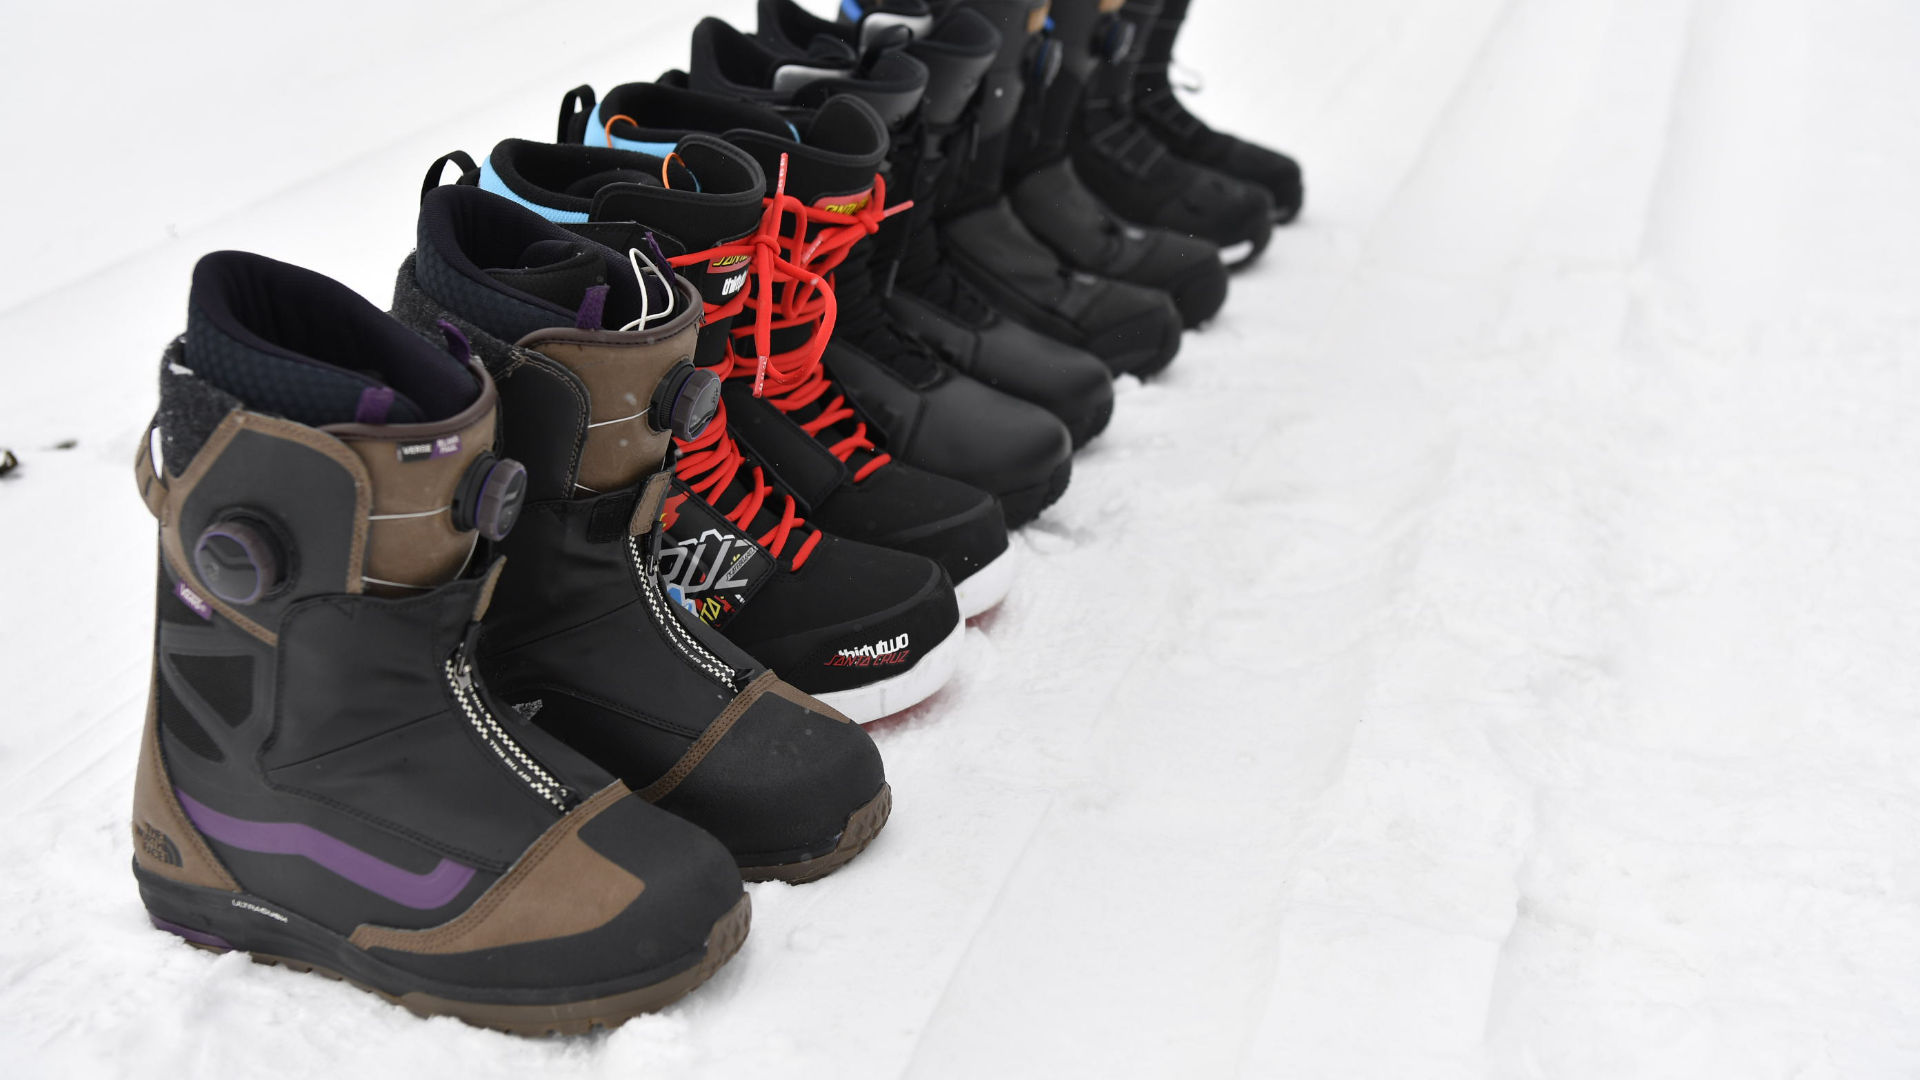 179538bd A selection of snowboard boots from Vans, Thirtytwo, adidas Snowboarding,  DC and Burton